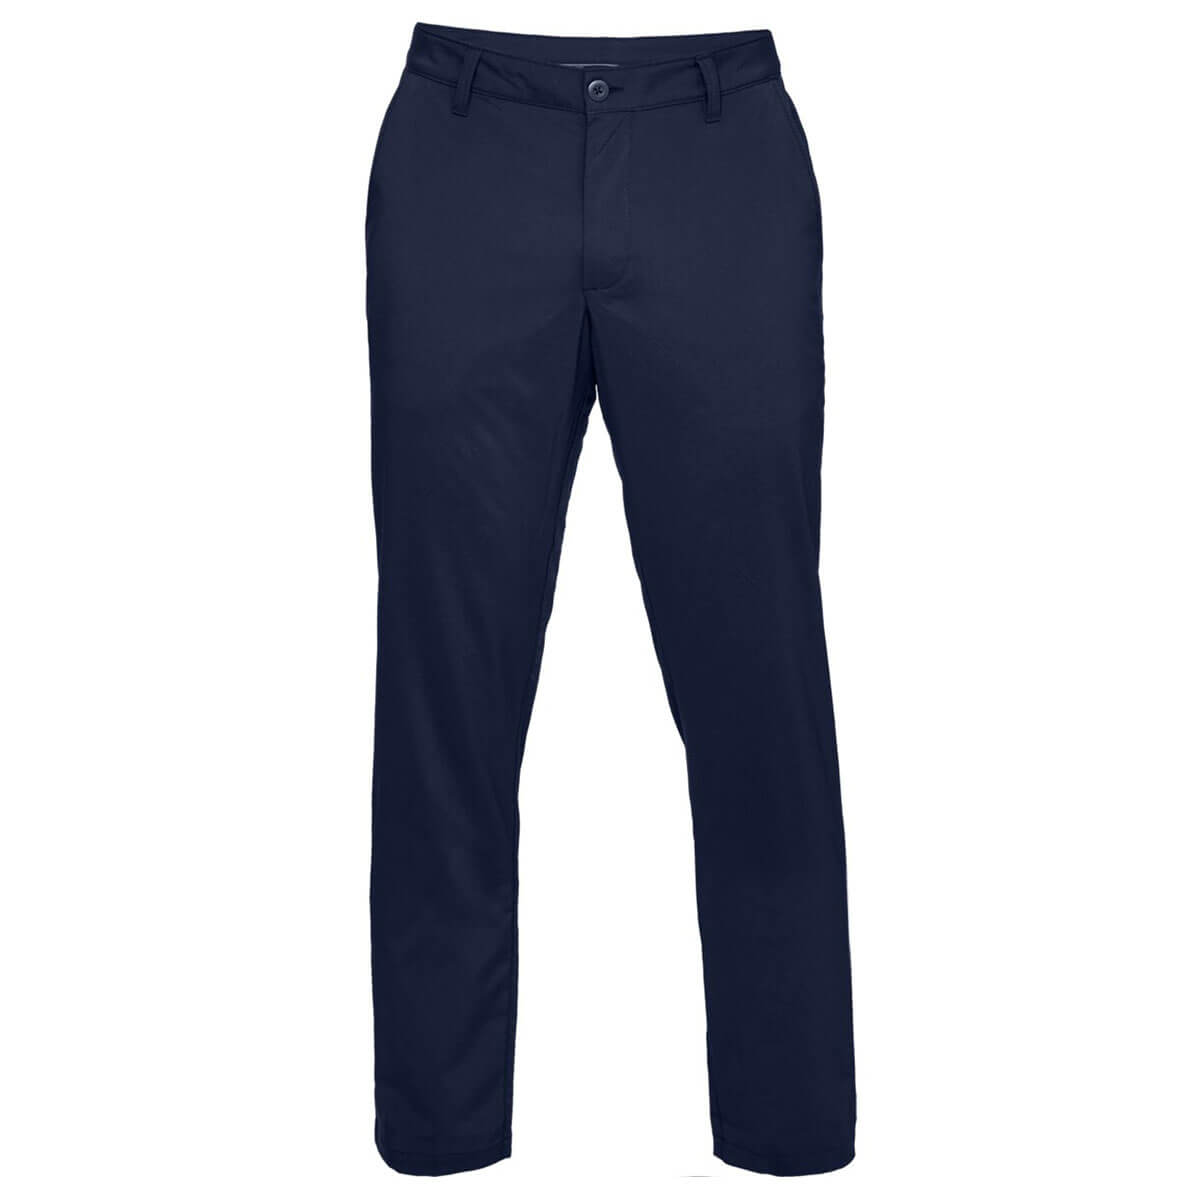 Under-Armour-Mens-2019-EU-Tech-Stretch-Straight-Golf-Trousers-30-OFF-RRP thumbnail 4